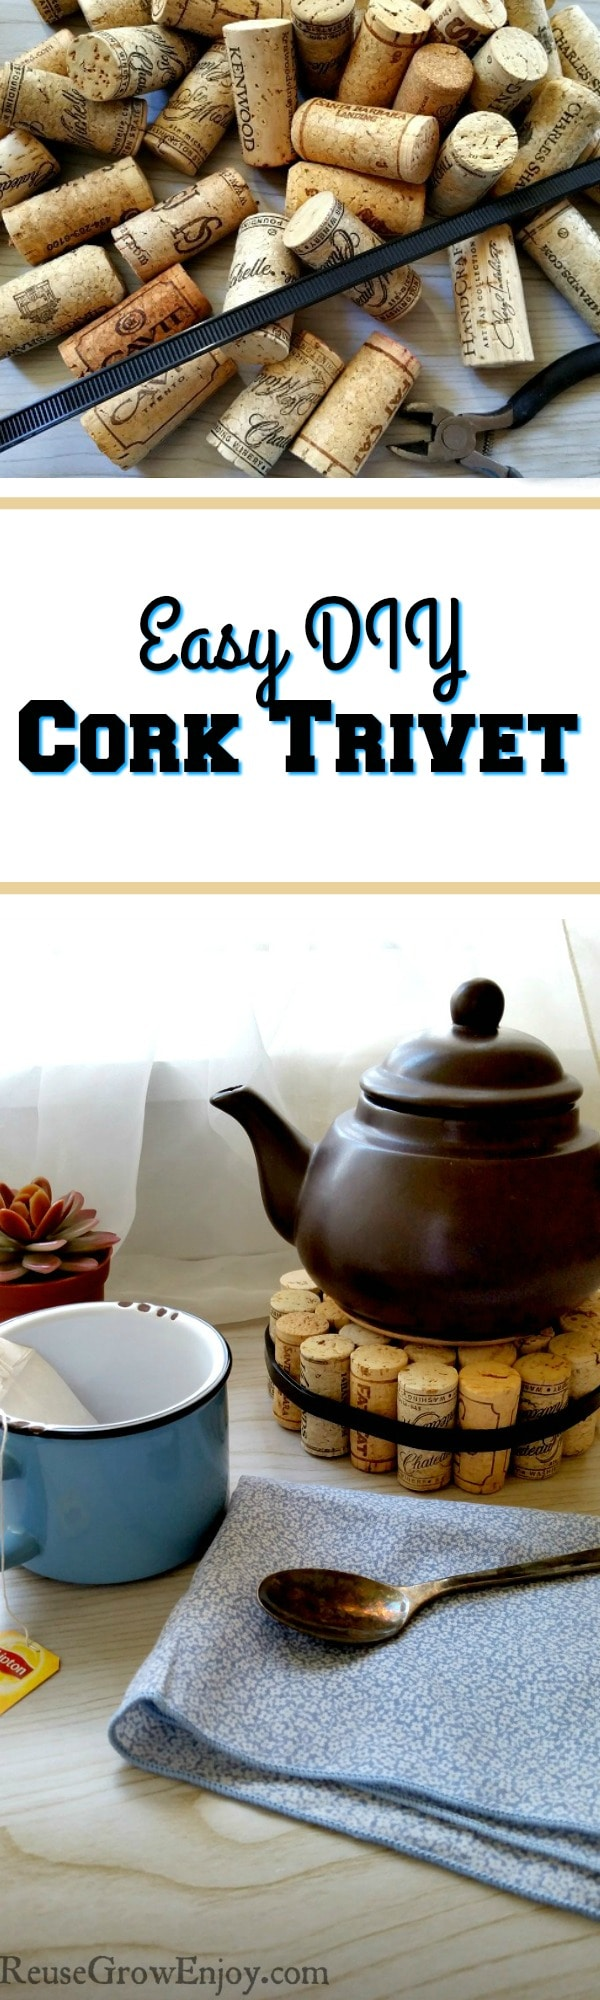 If you have a lot of corks on hand, this is a great way to reuse them. You can make this Easy DIY Cork Trivet! Now you can upcycle all those corks!